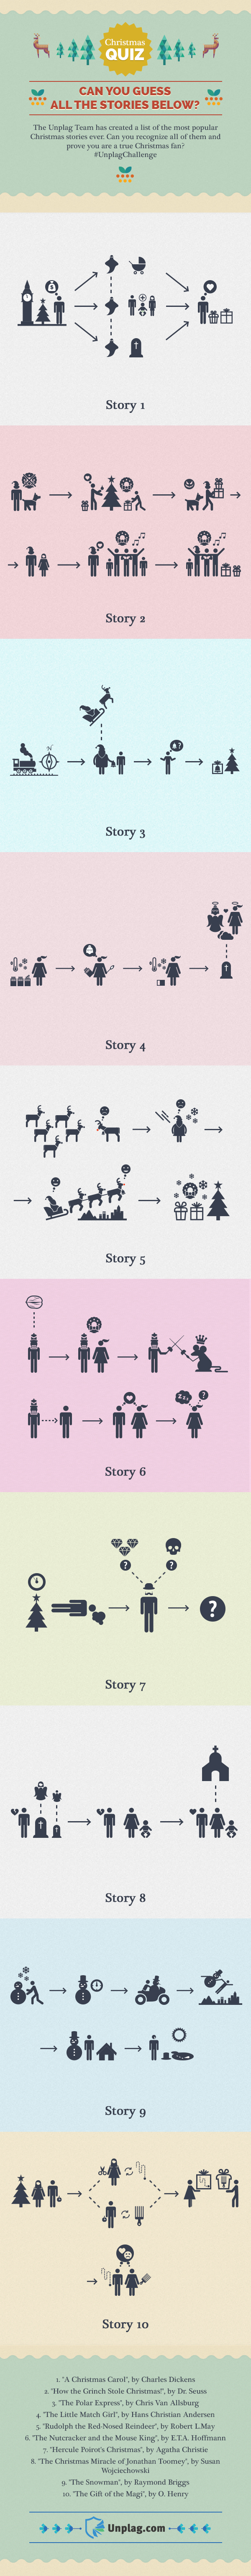 Christmas Quiz: 10 Most Popular Stories infographic